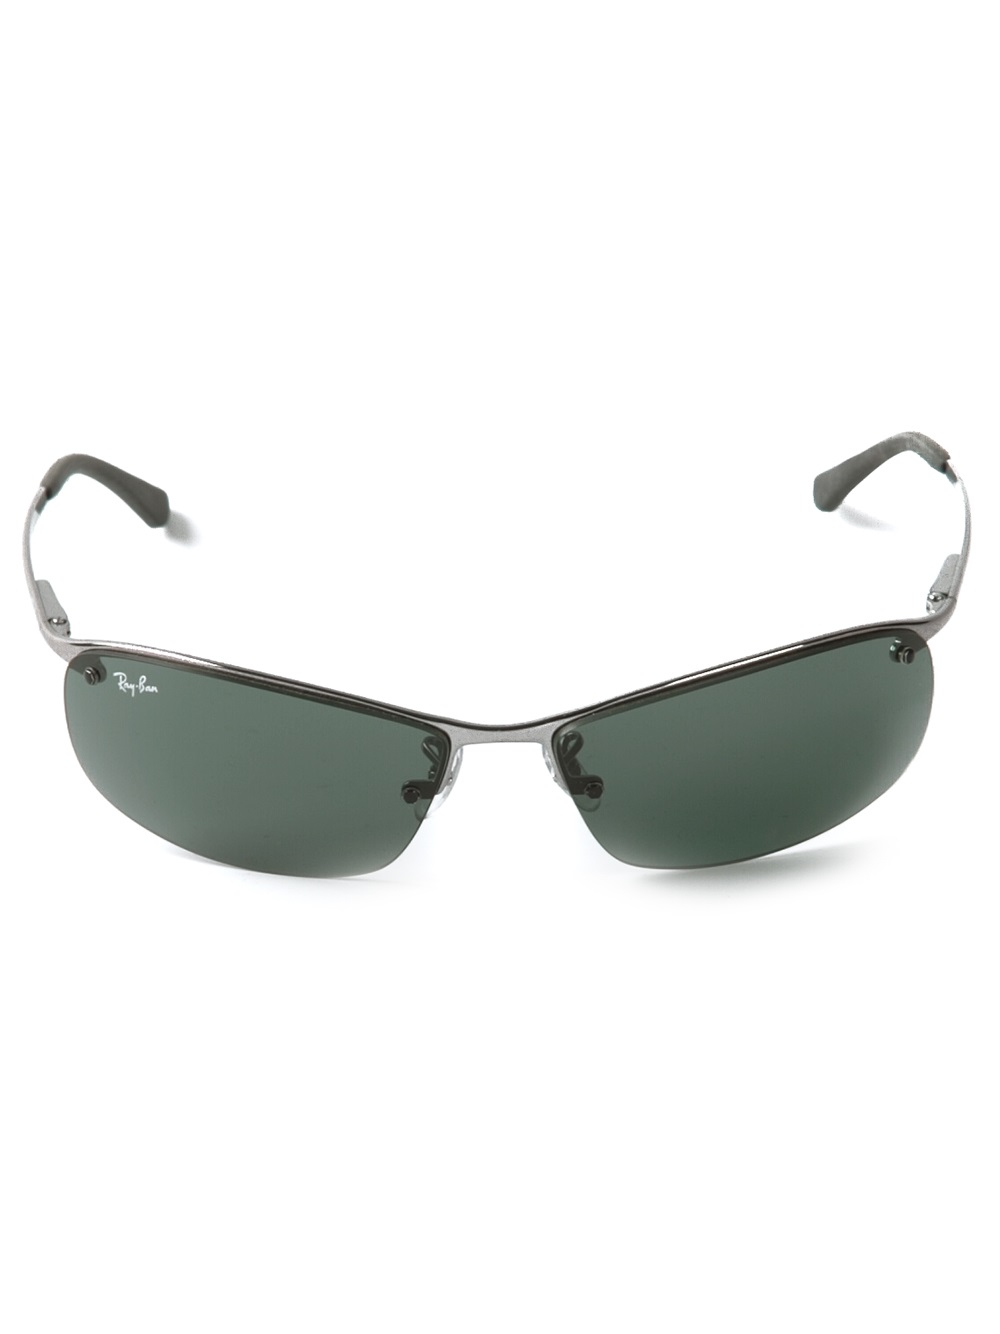 Ray Ban Oval Shape Sunglasses In Metallic For Men Lyst